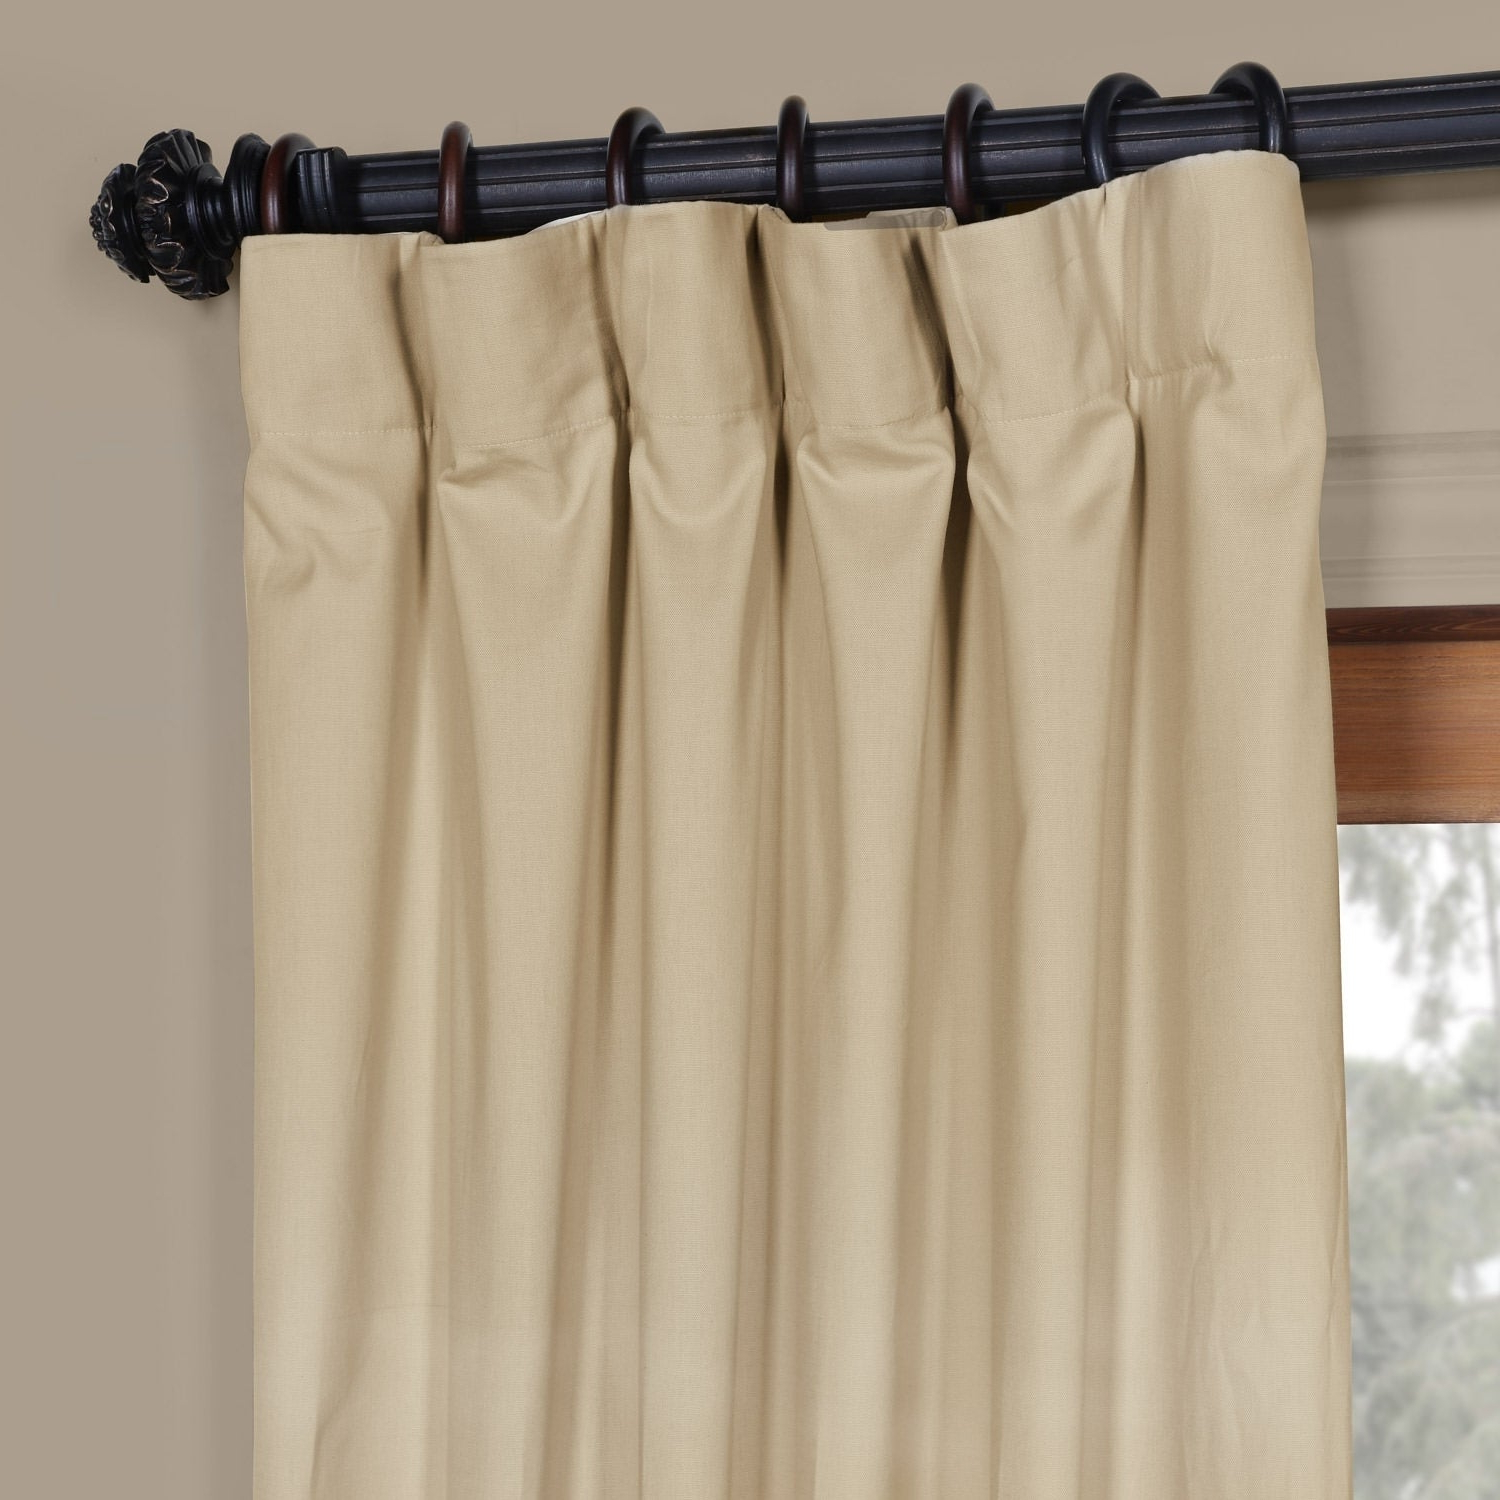 Solid Cotton Curtain Panels Throughout Well Known Exclusive Fabrics Solid Cotton Curtain Panel (View 15 of 20)